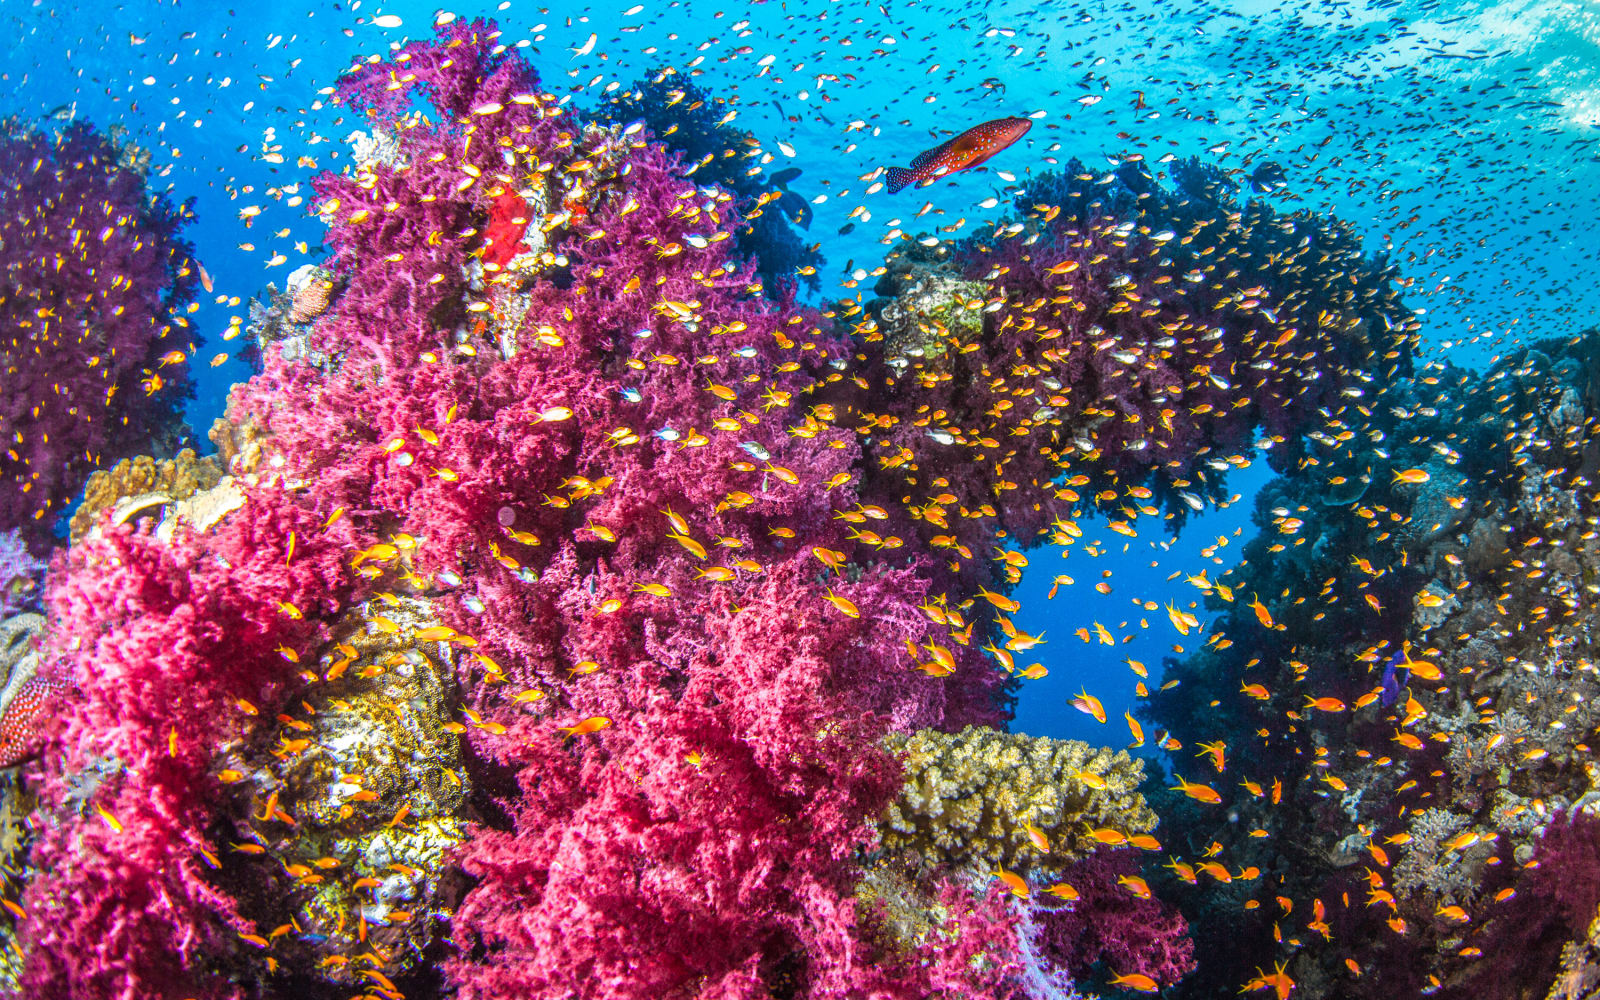 >Red Sea Reef